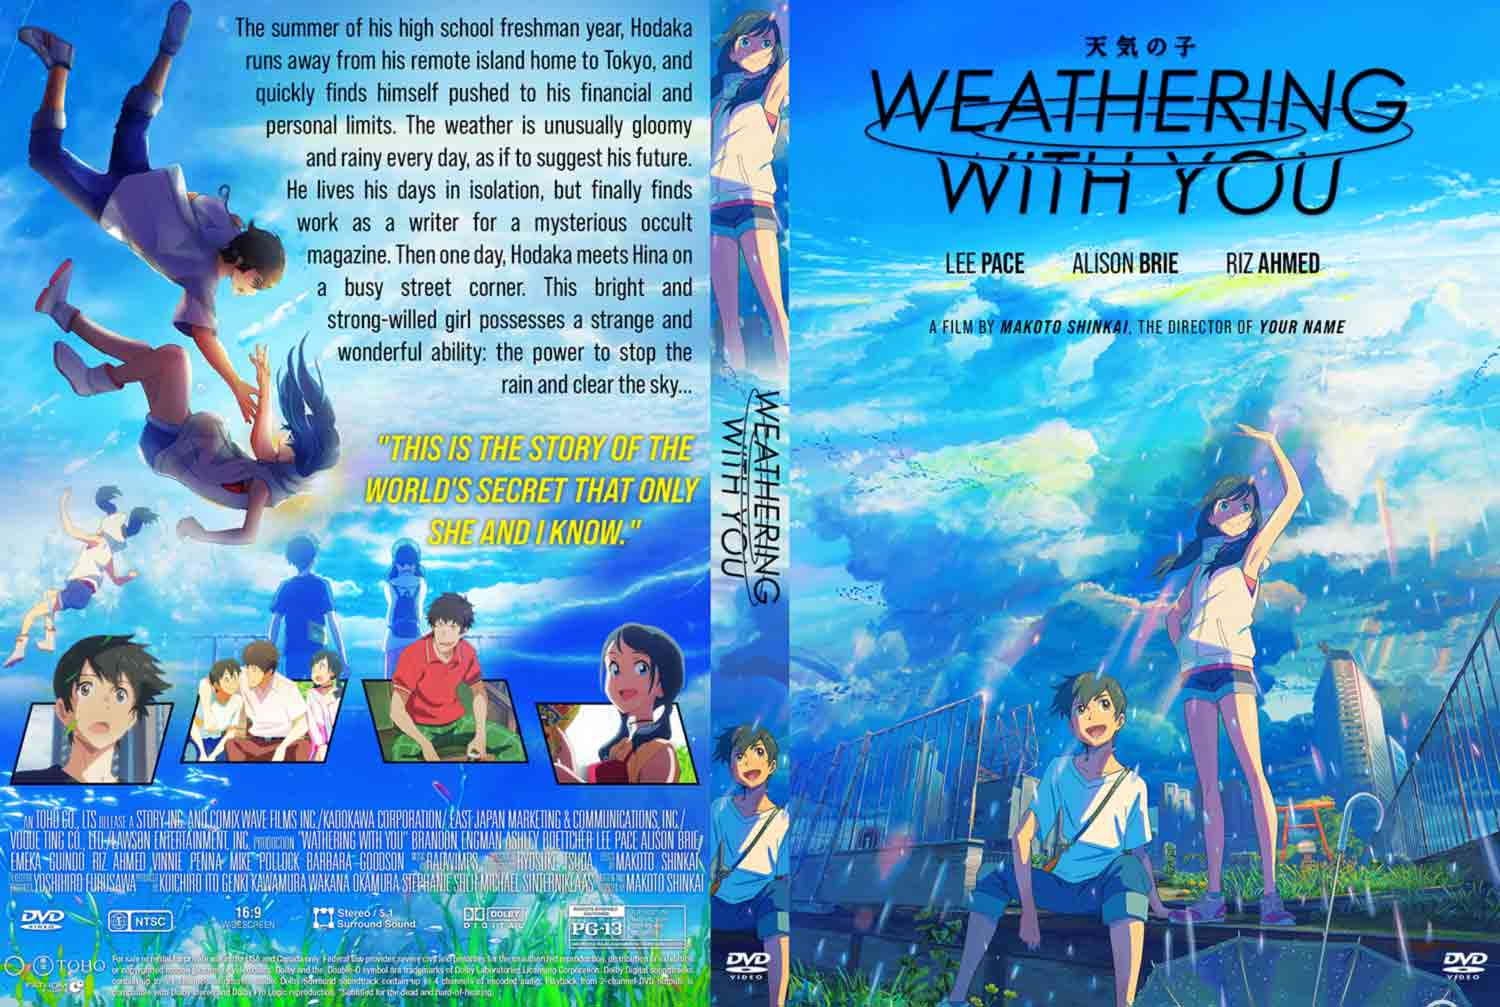 Weathering With You 2019 Dvd Cover Cover Addict Free Dvd Bluray Covers And Movie Posters